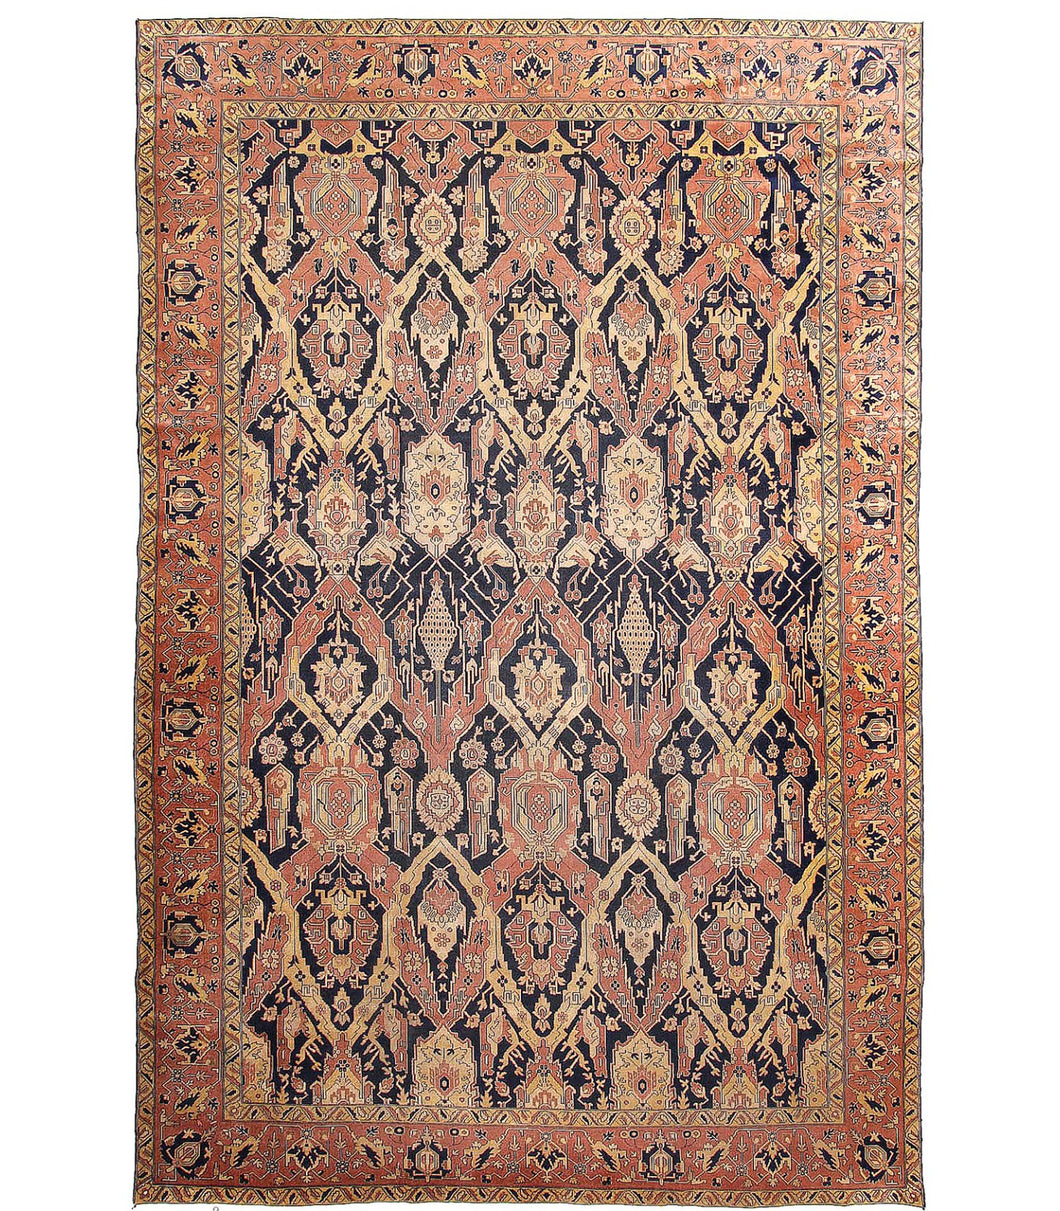 12508 ANTIQUE PERSIAN